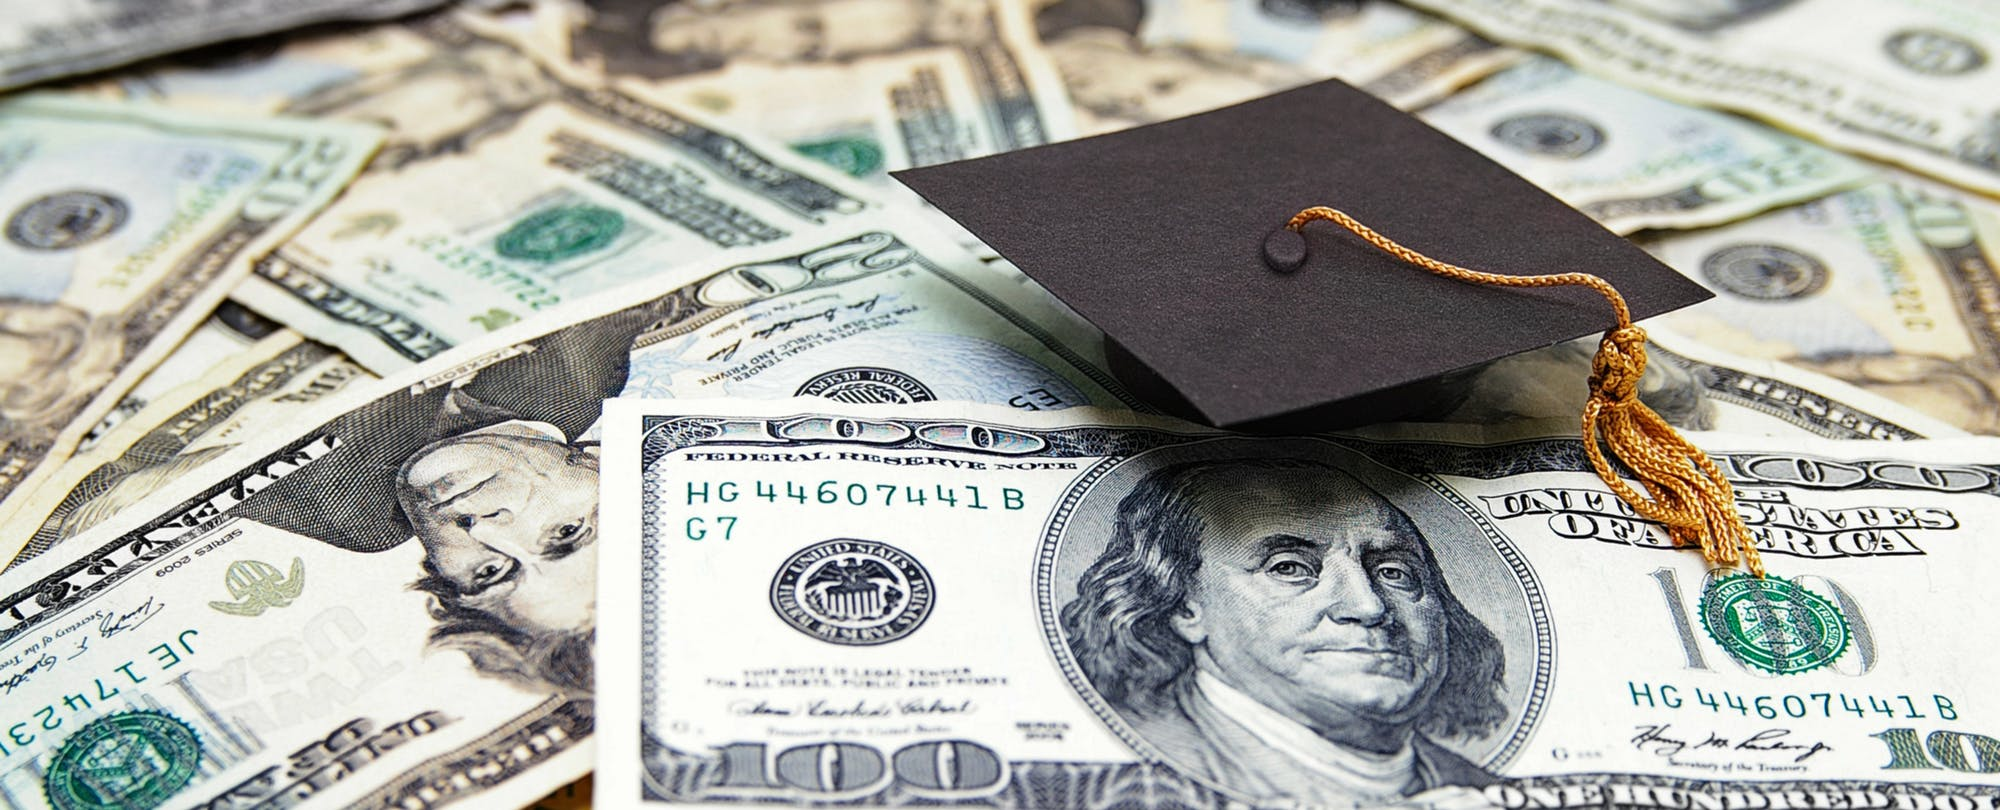 Student Loan Debt at an All Time High